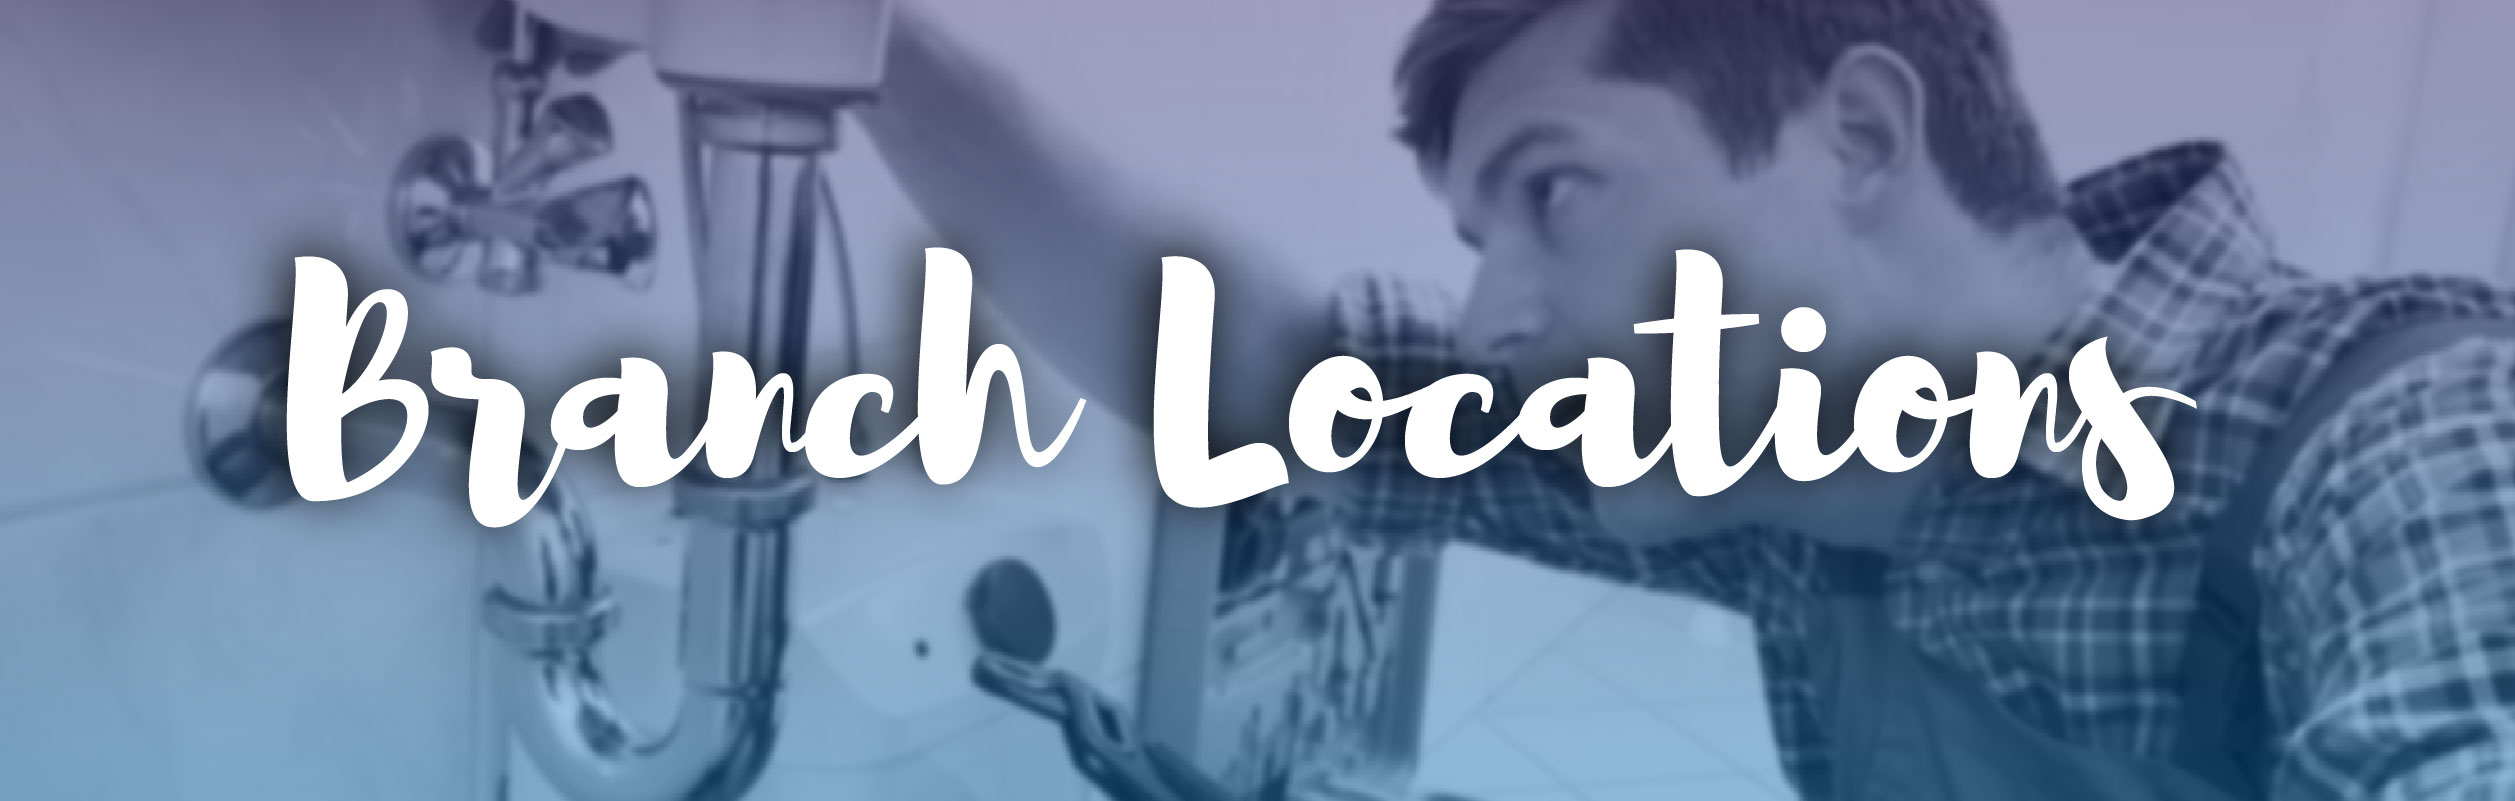 Branch Locations Header-01